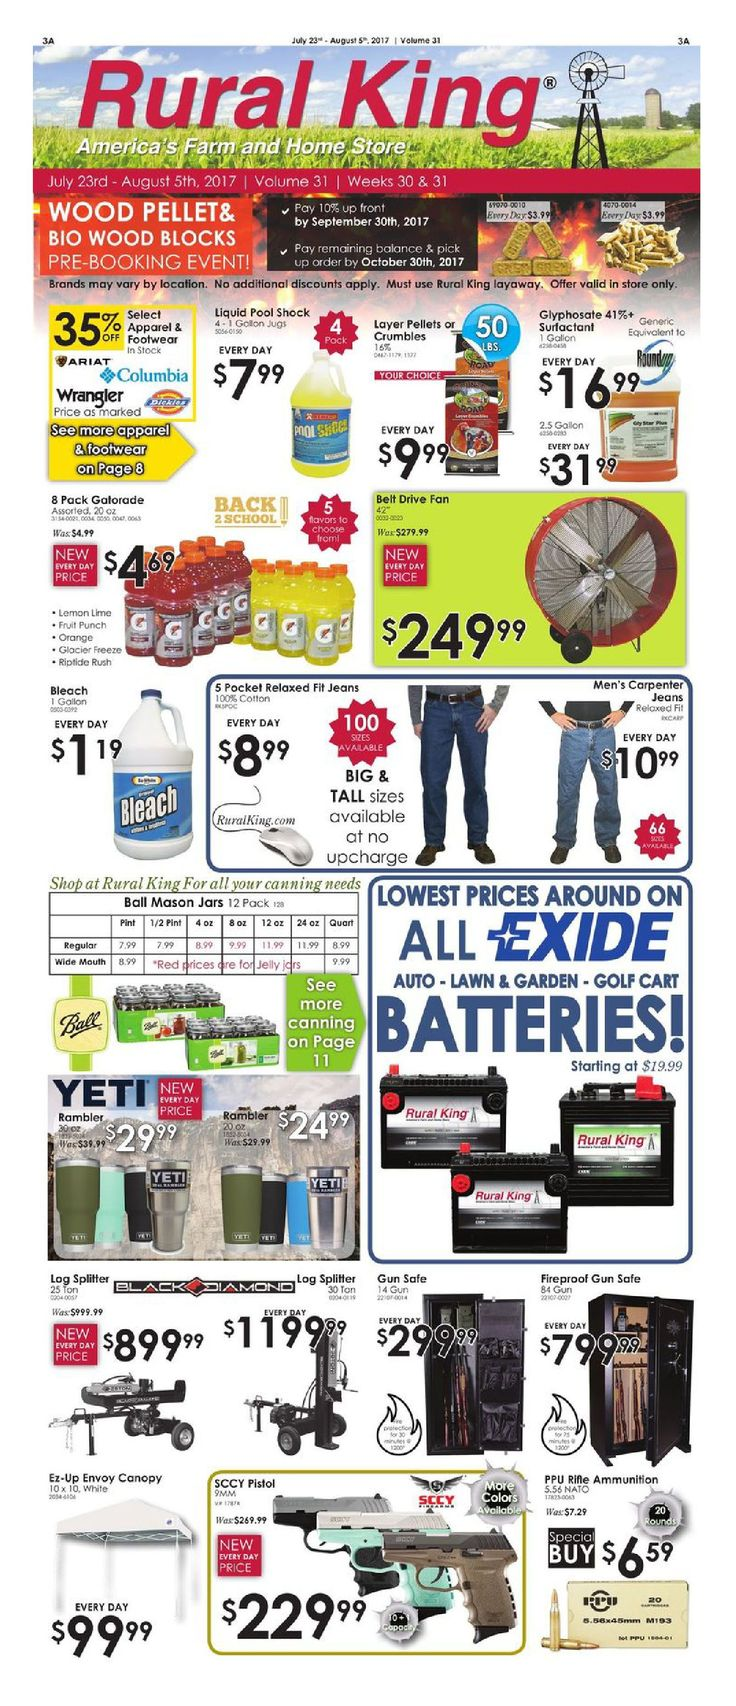 Rural King Weekly Ad July 23 - August 5, 2017 - http://www.olcatalog.com/rural-king/rural-king-ad.html